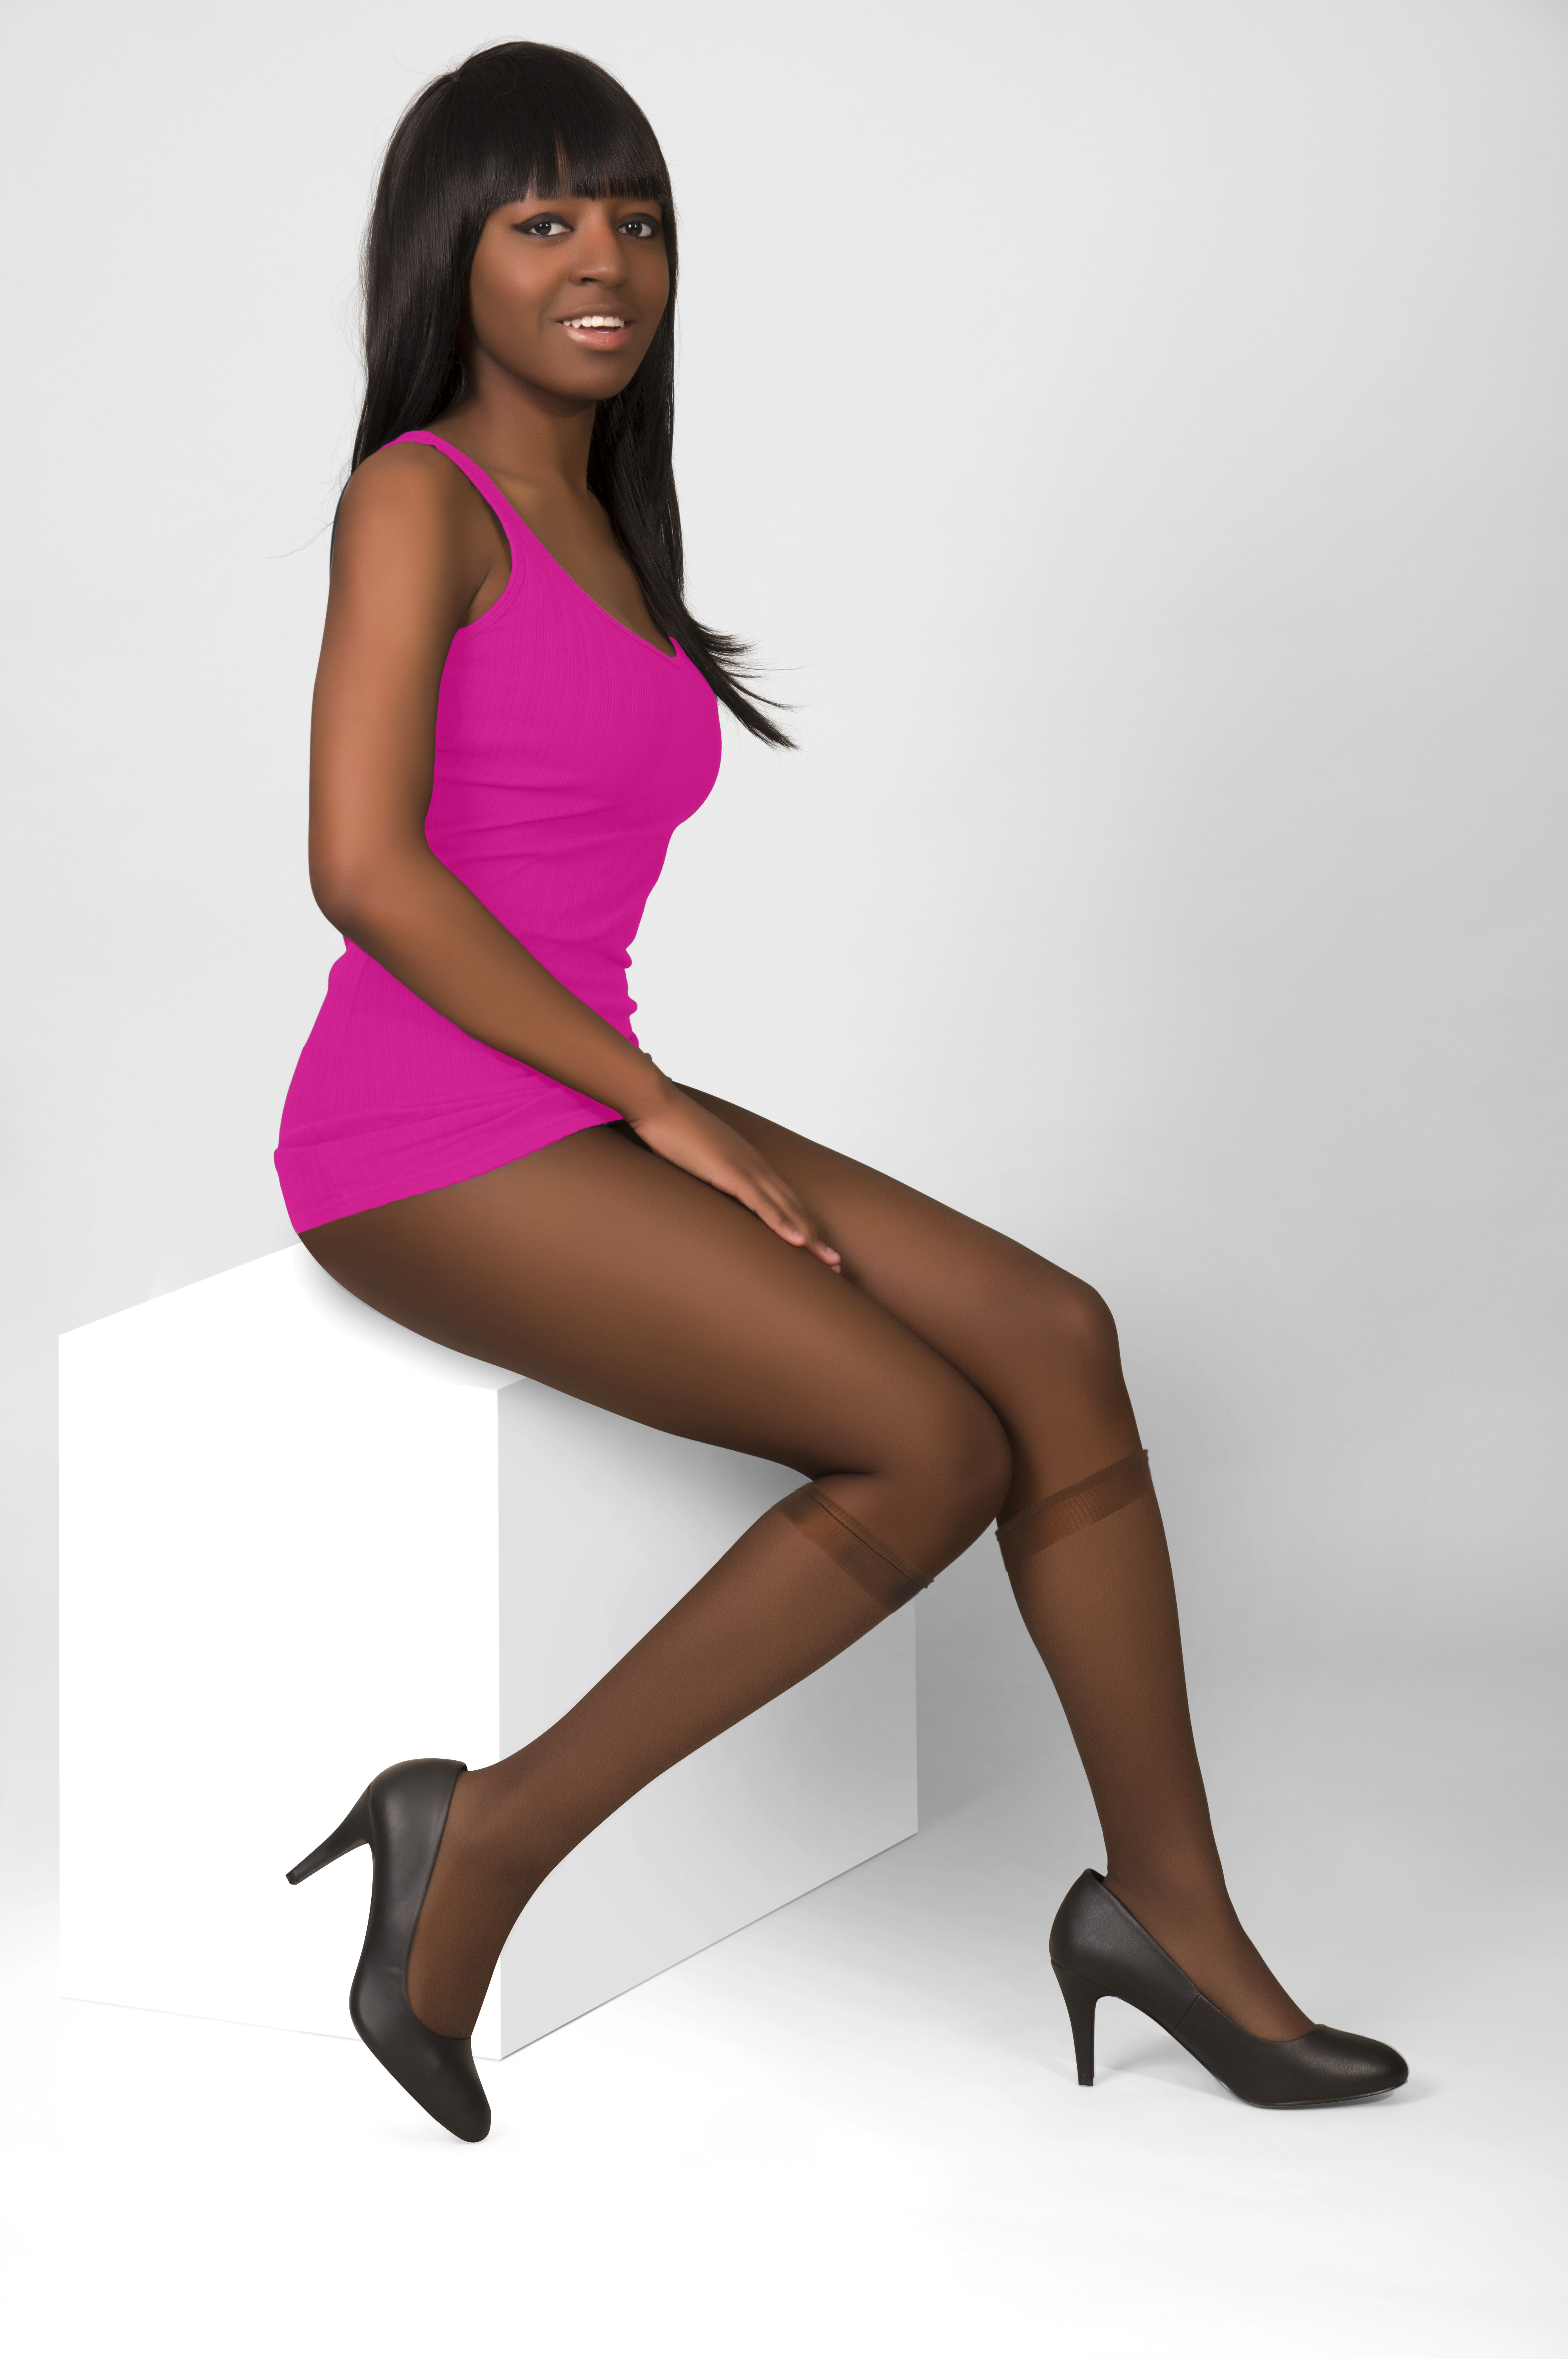 2cb7a1289c087 Tone 50 – Pendeza Toned Collection sheer Knee Highs For Ultimately Darker  Skin Tones | Pendeza Pantyhose